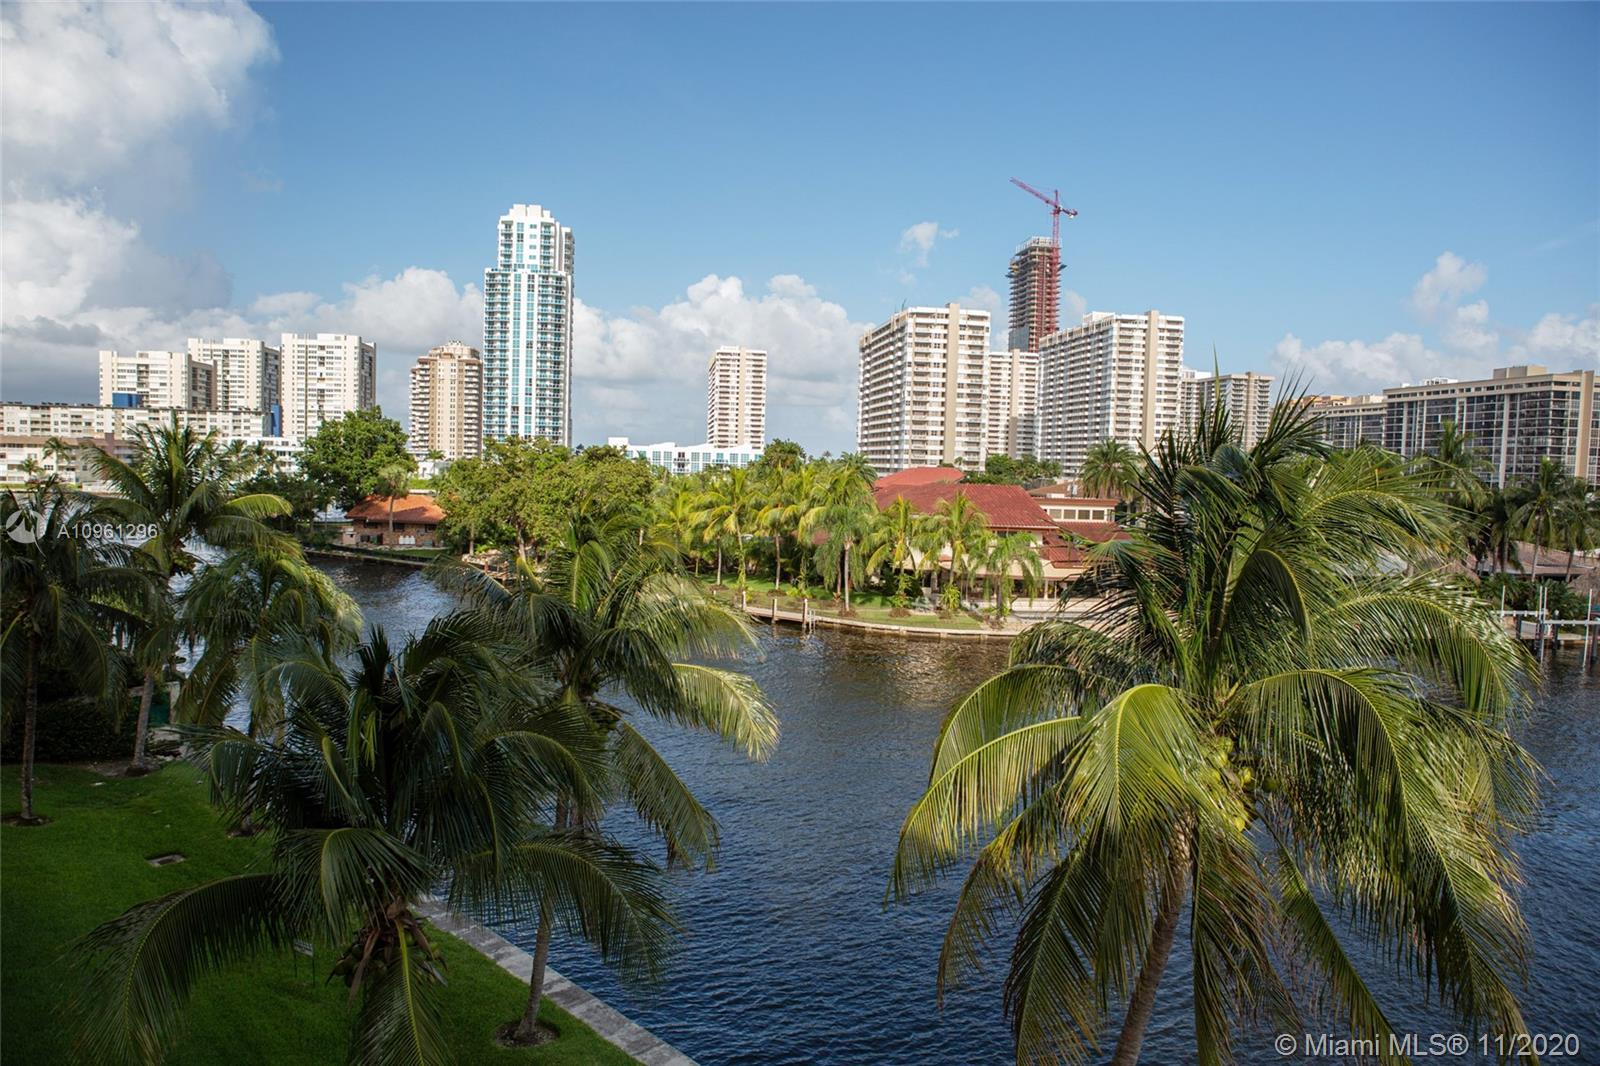 Beautiful condo located in Golden Isles in the Hallandale Yacht Club, majestic views over the canal